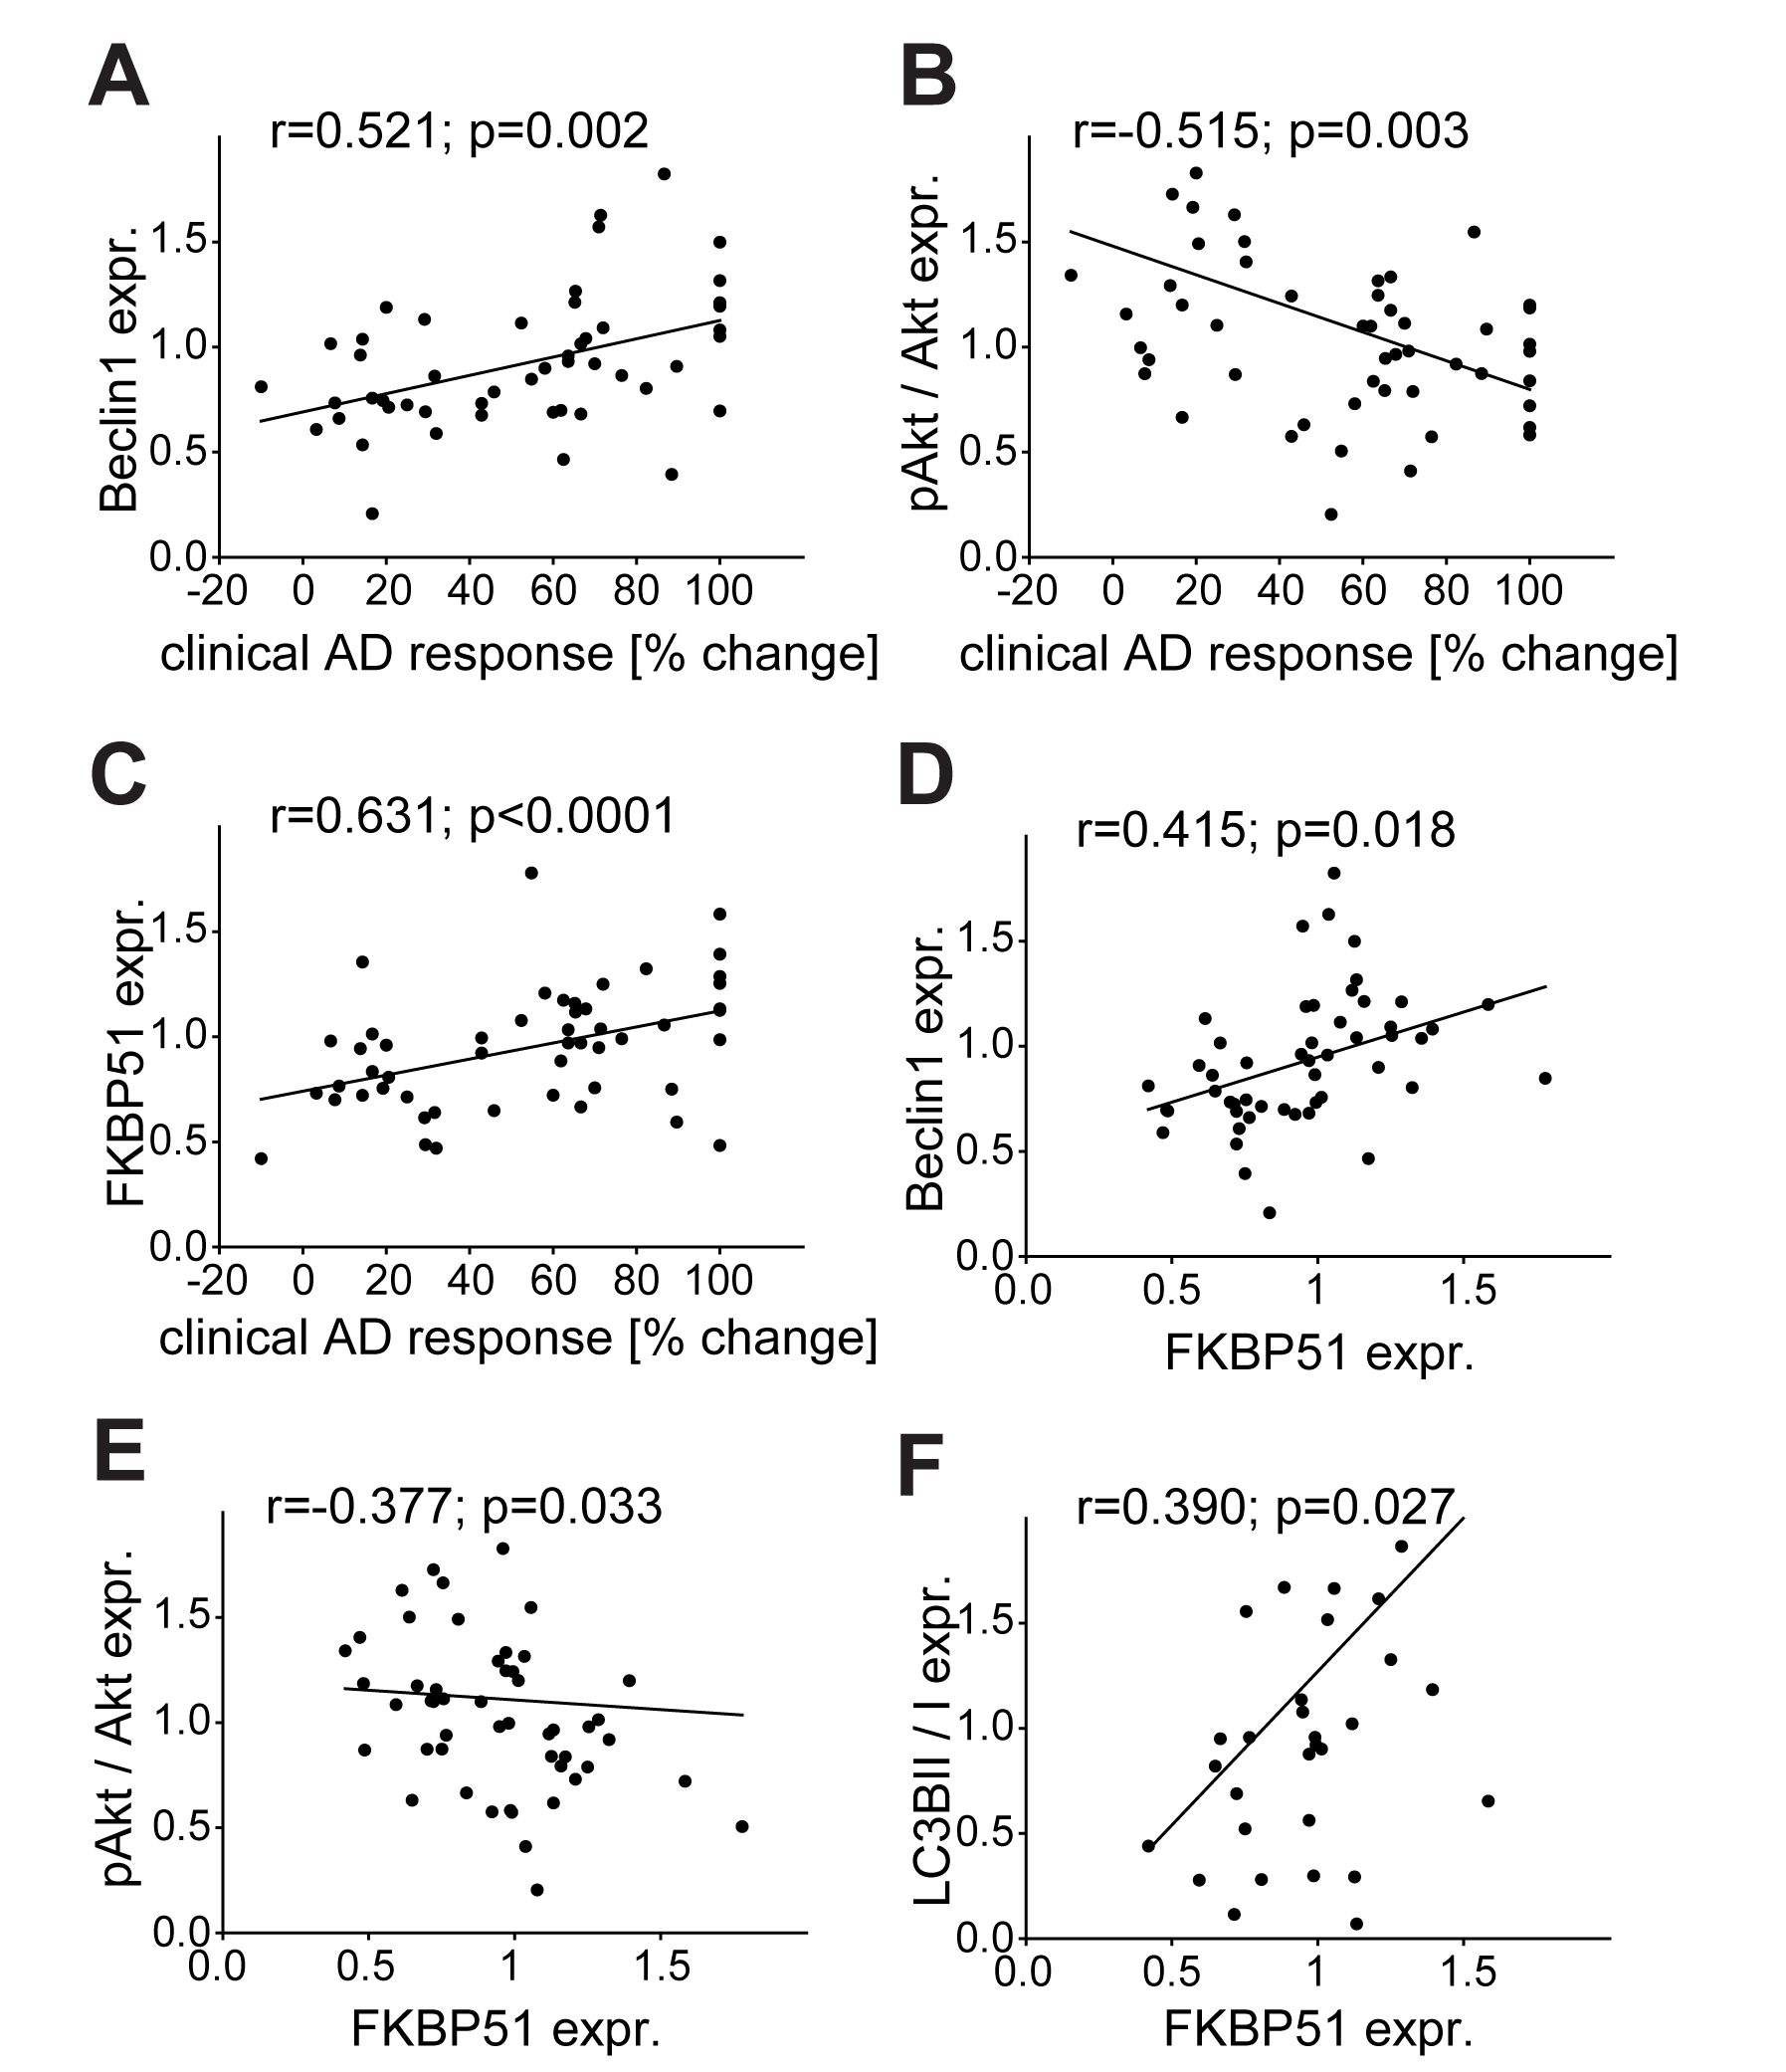 Correlation of the expression of FKBP51, pAkt, and Beclin1 with clinical antidepressant response, and of the autophagic markers Beclin1, pAkt, and LC3B-II/I with FKBP51.